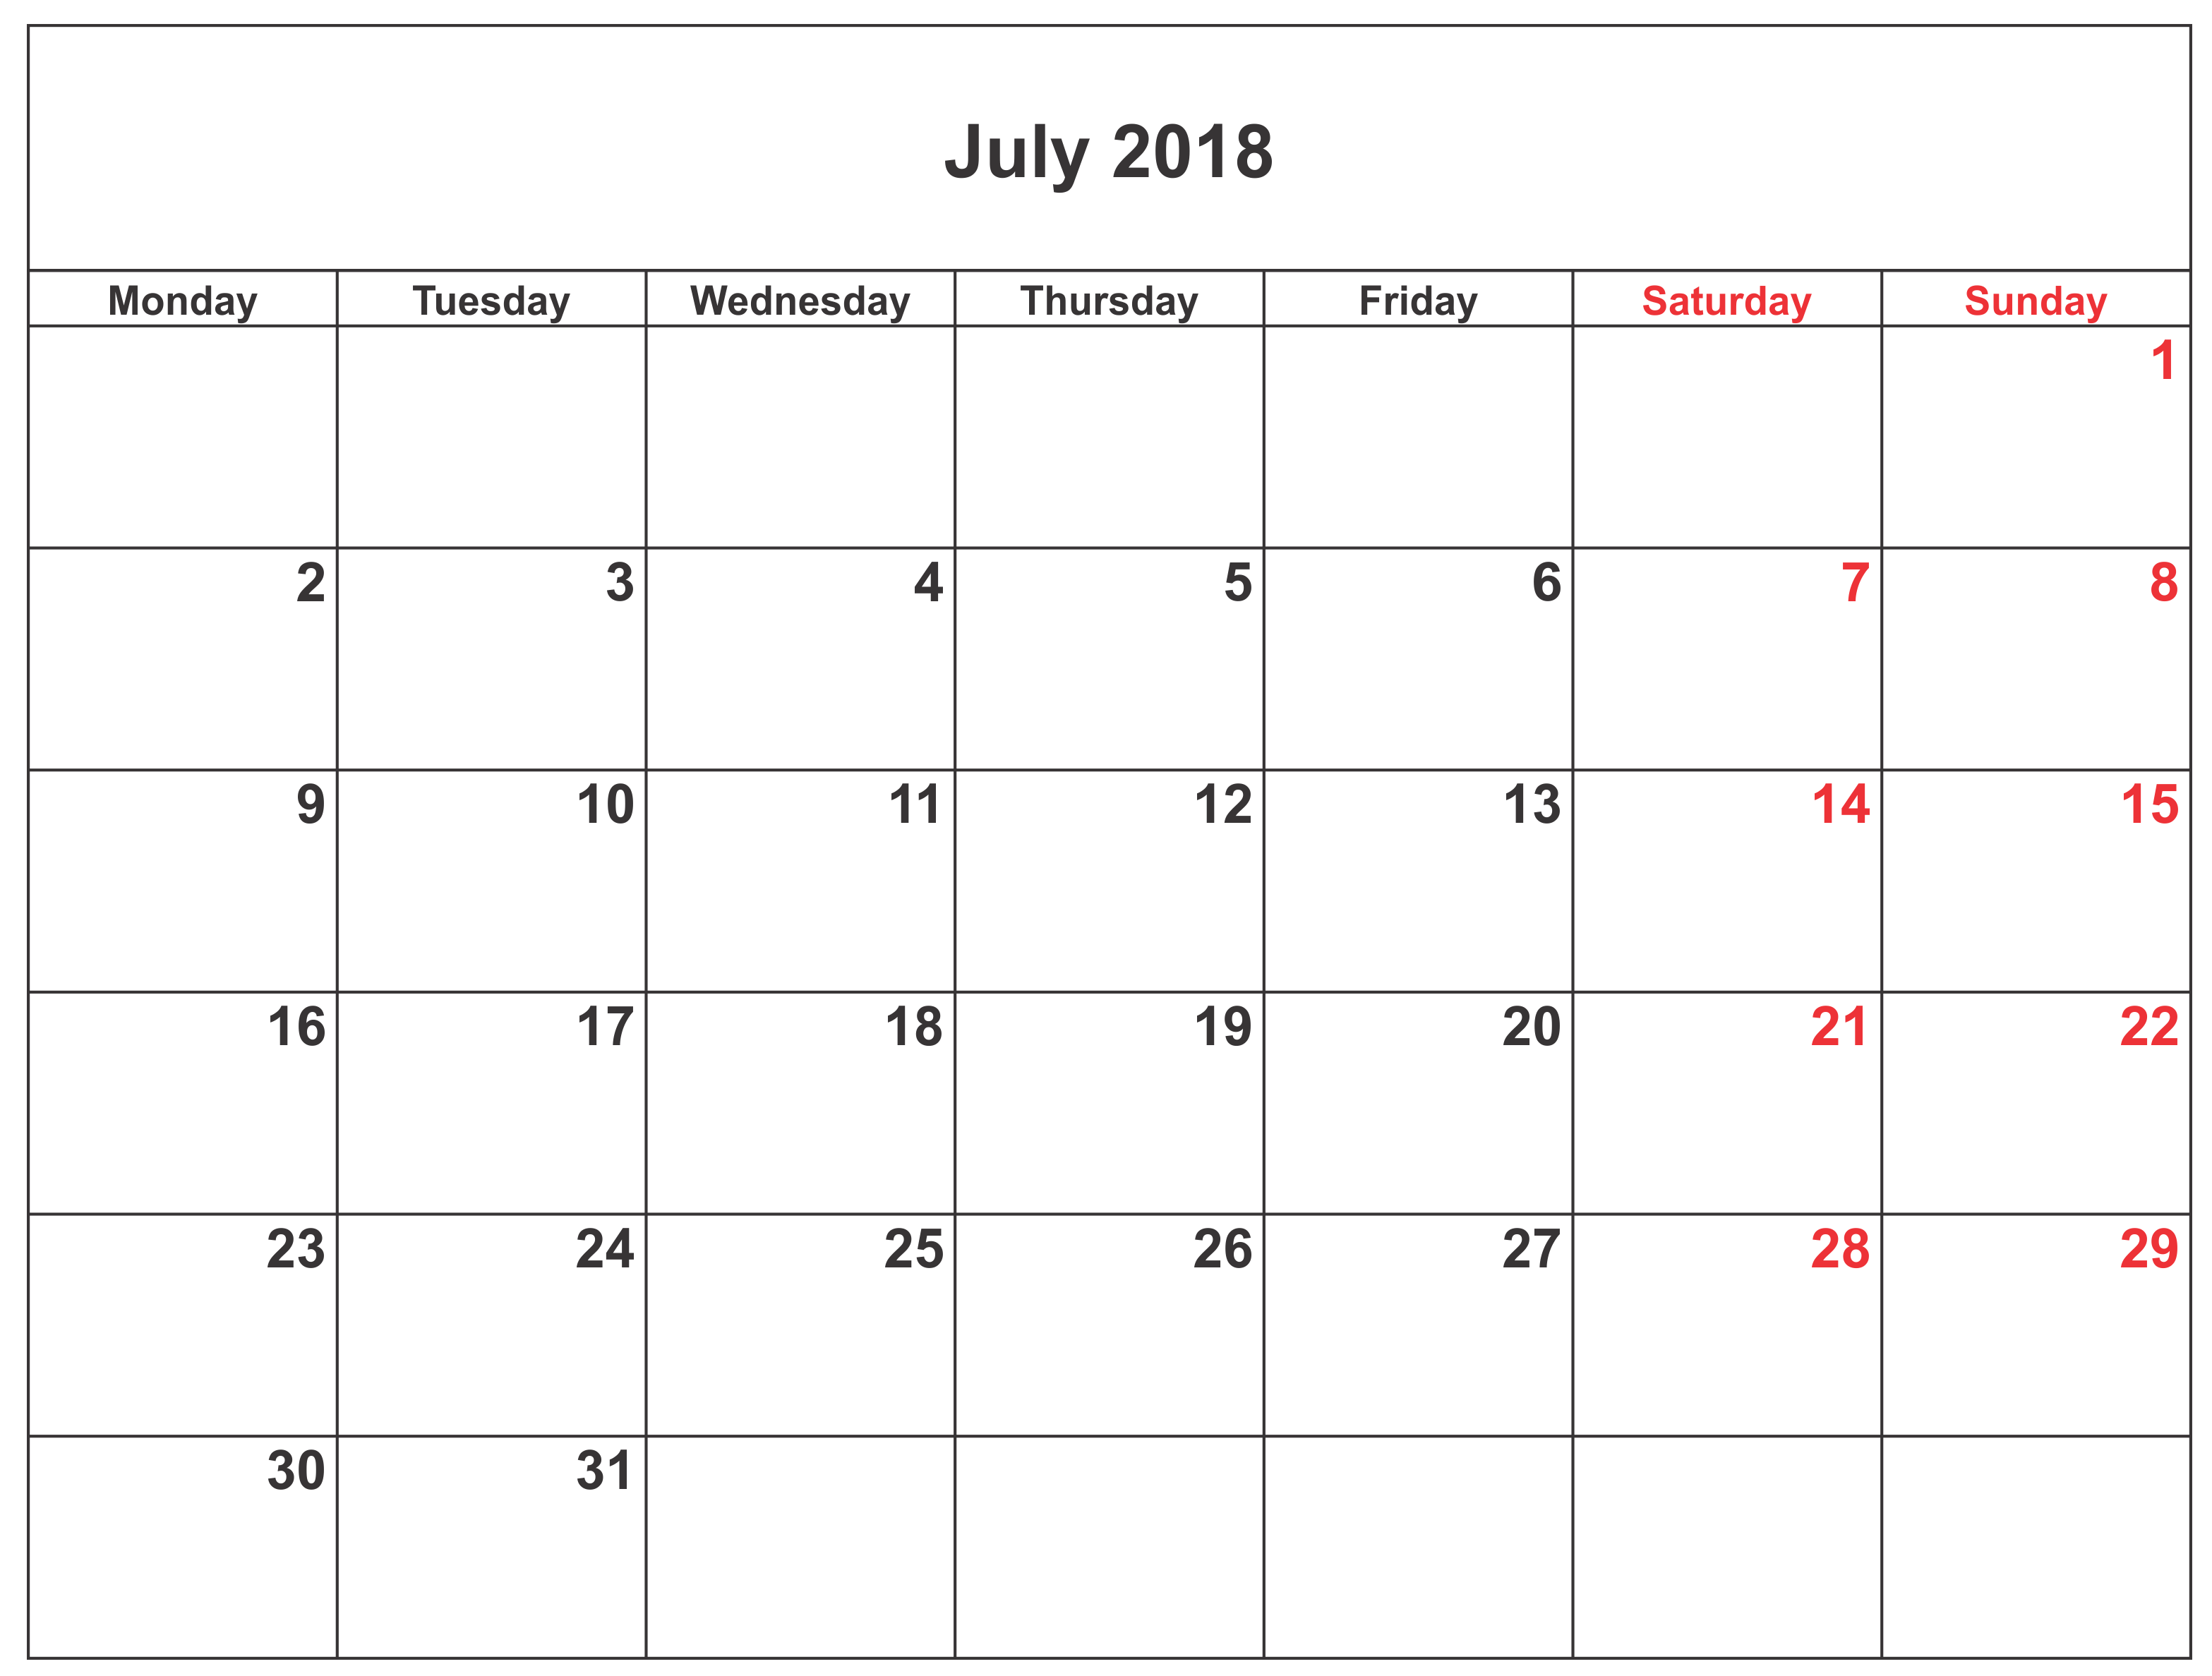 July 2018 Calendar in Excel